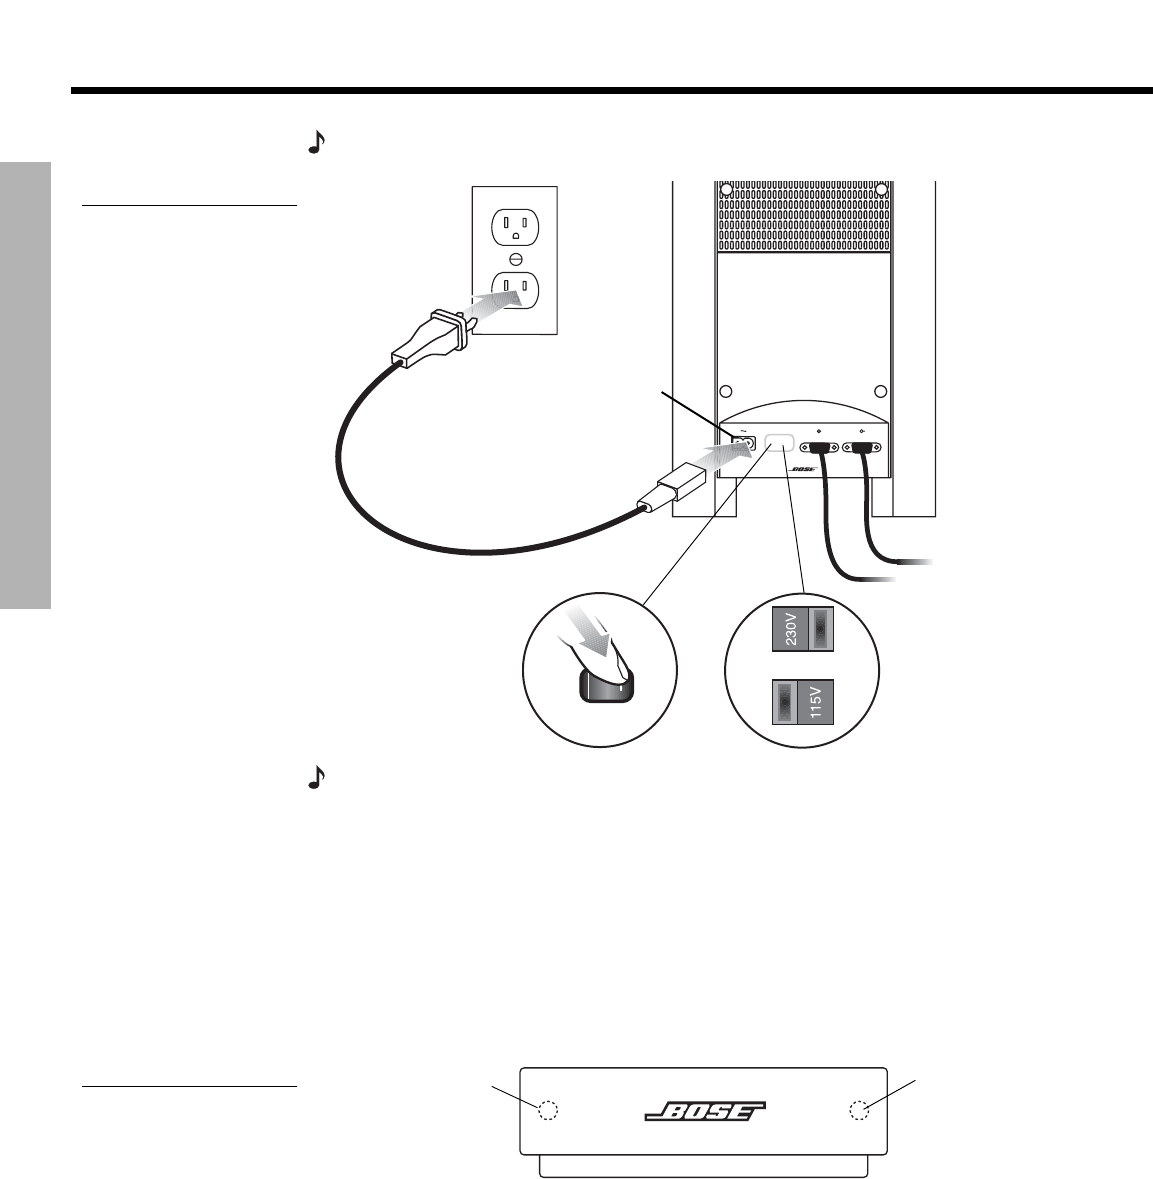 Volvo Wiring Diagrams Kenwood Kdc Harness Diagram Volvo